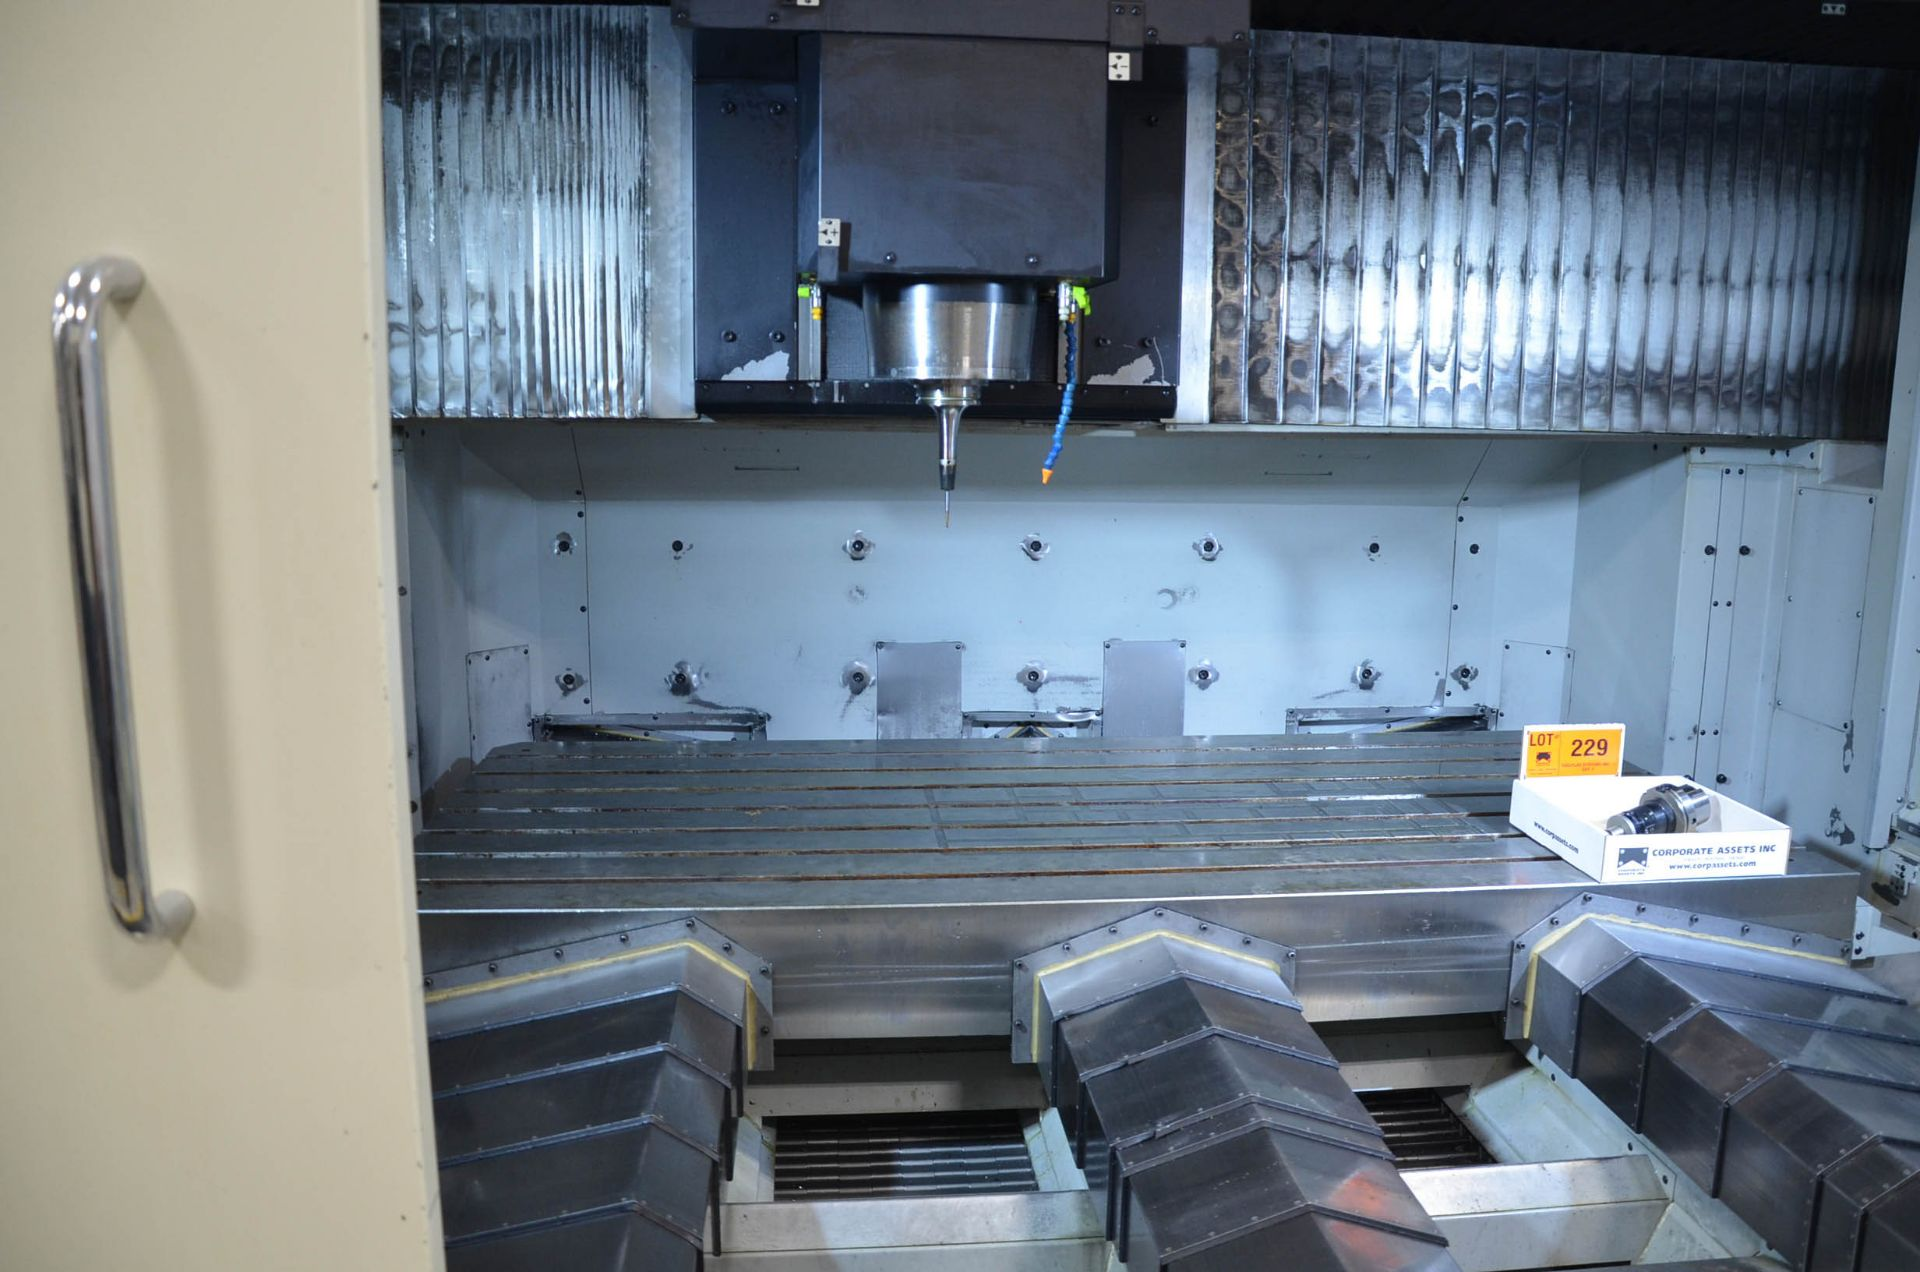 MAKINO (2008) V99L(#50) CNC VERTICAL MACHINING CENTER WITH MAKINO PROFESSIONAL 5 CNC CONTROL, 39. - Image 10 of 12